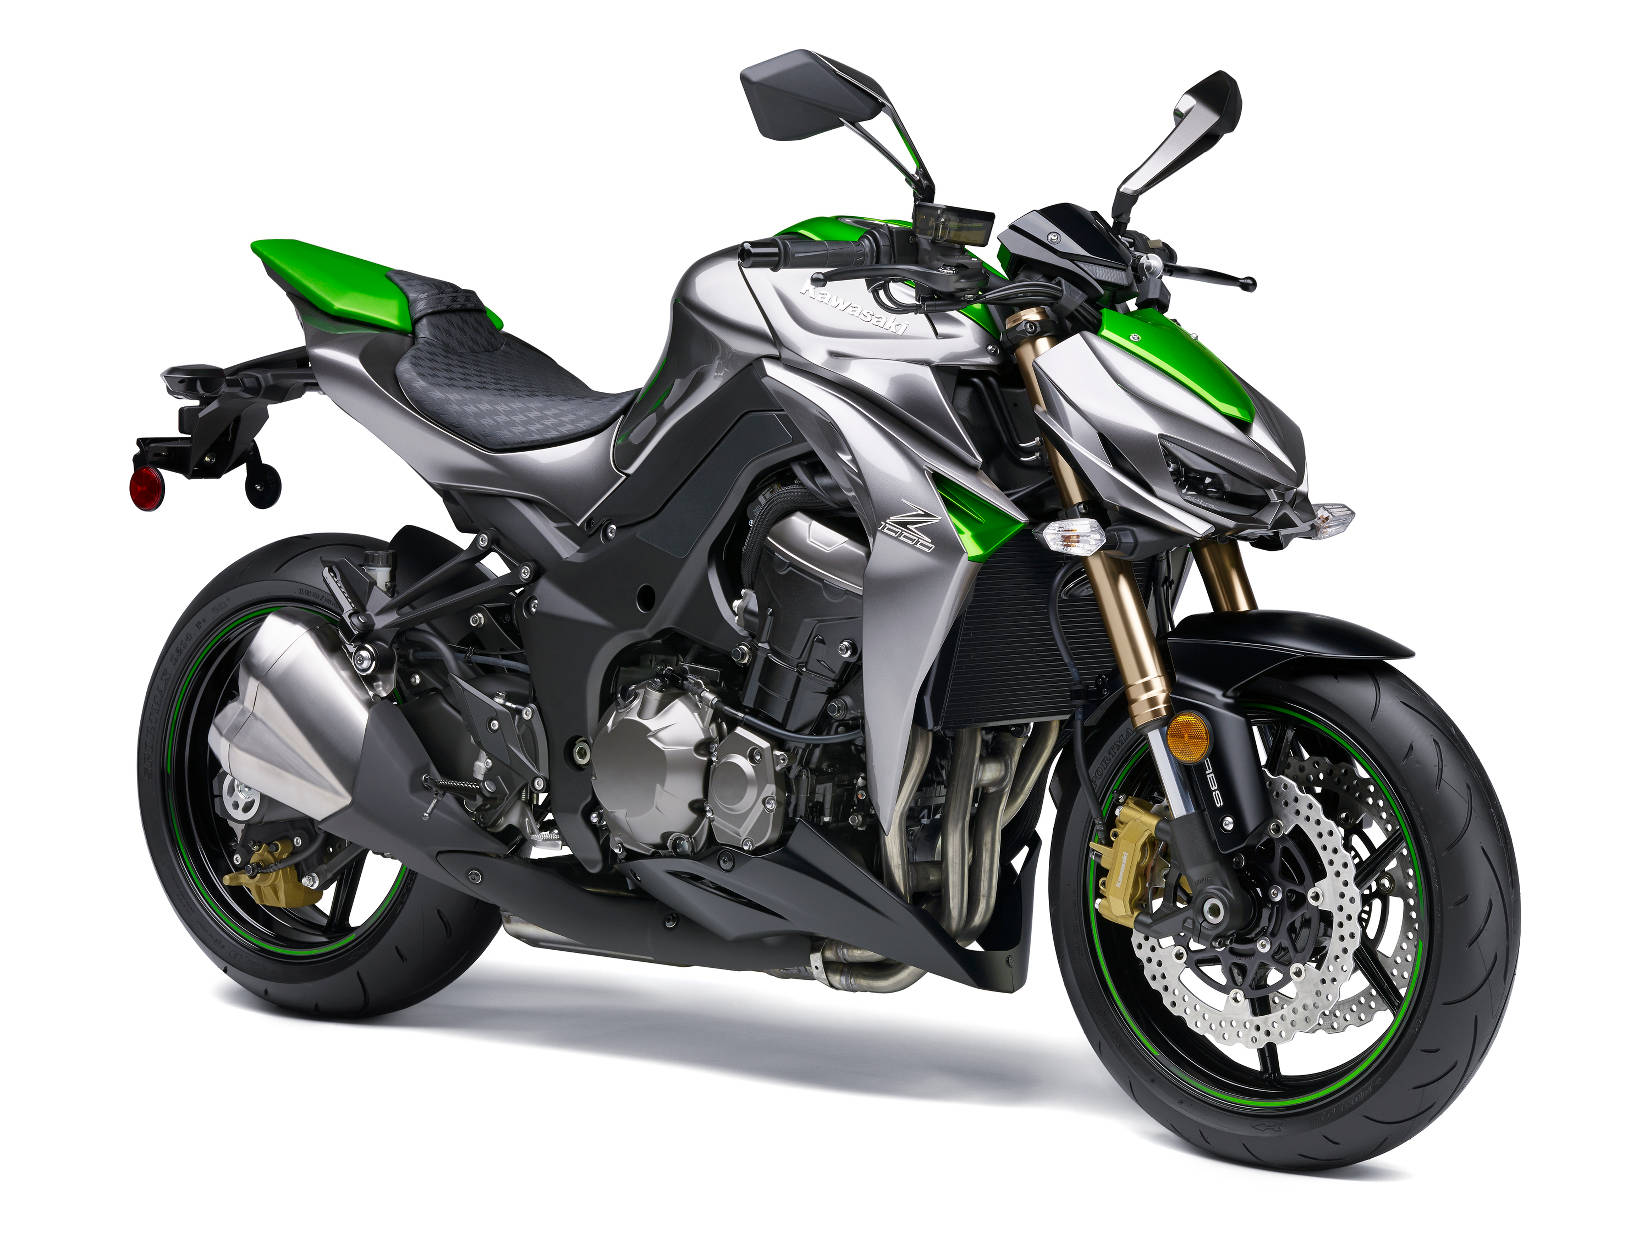 Radical 2014 Kawasaki Z1000 Unveiled 171 Motorcycledaily Com Motorcycle News Editorials